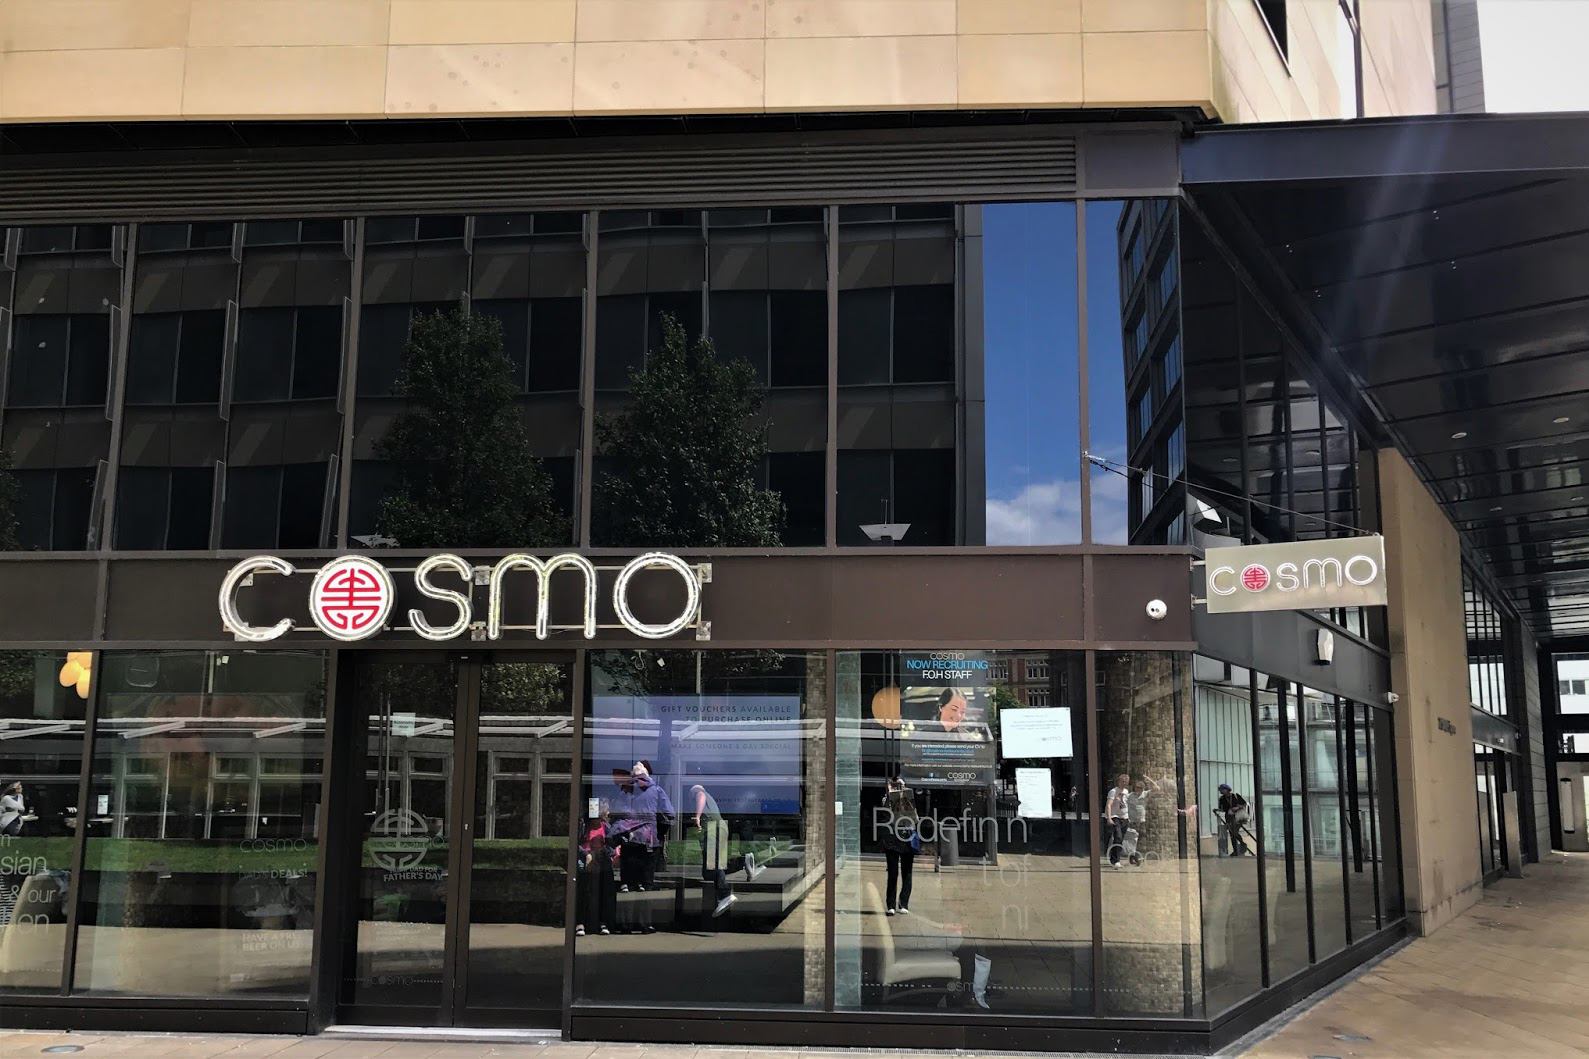 Cosmo Sheffield Menu Photos And Information By Go Dine